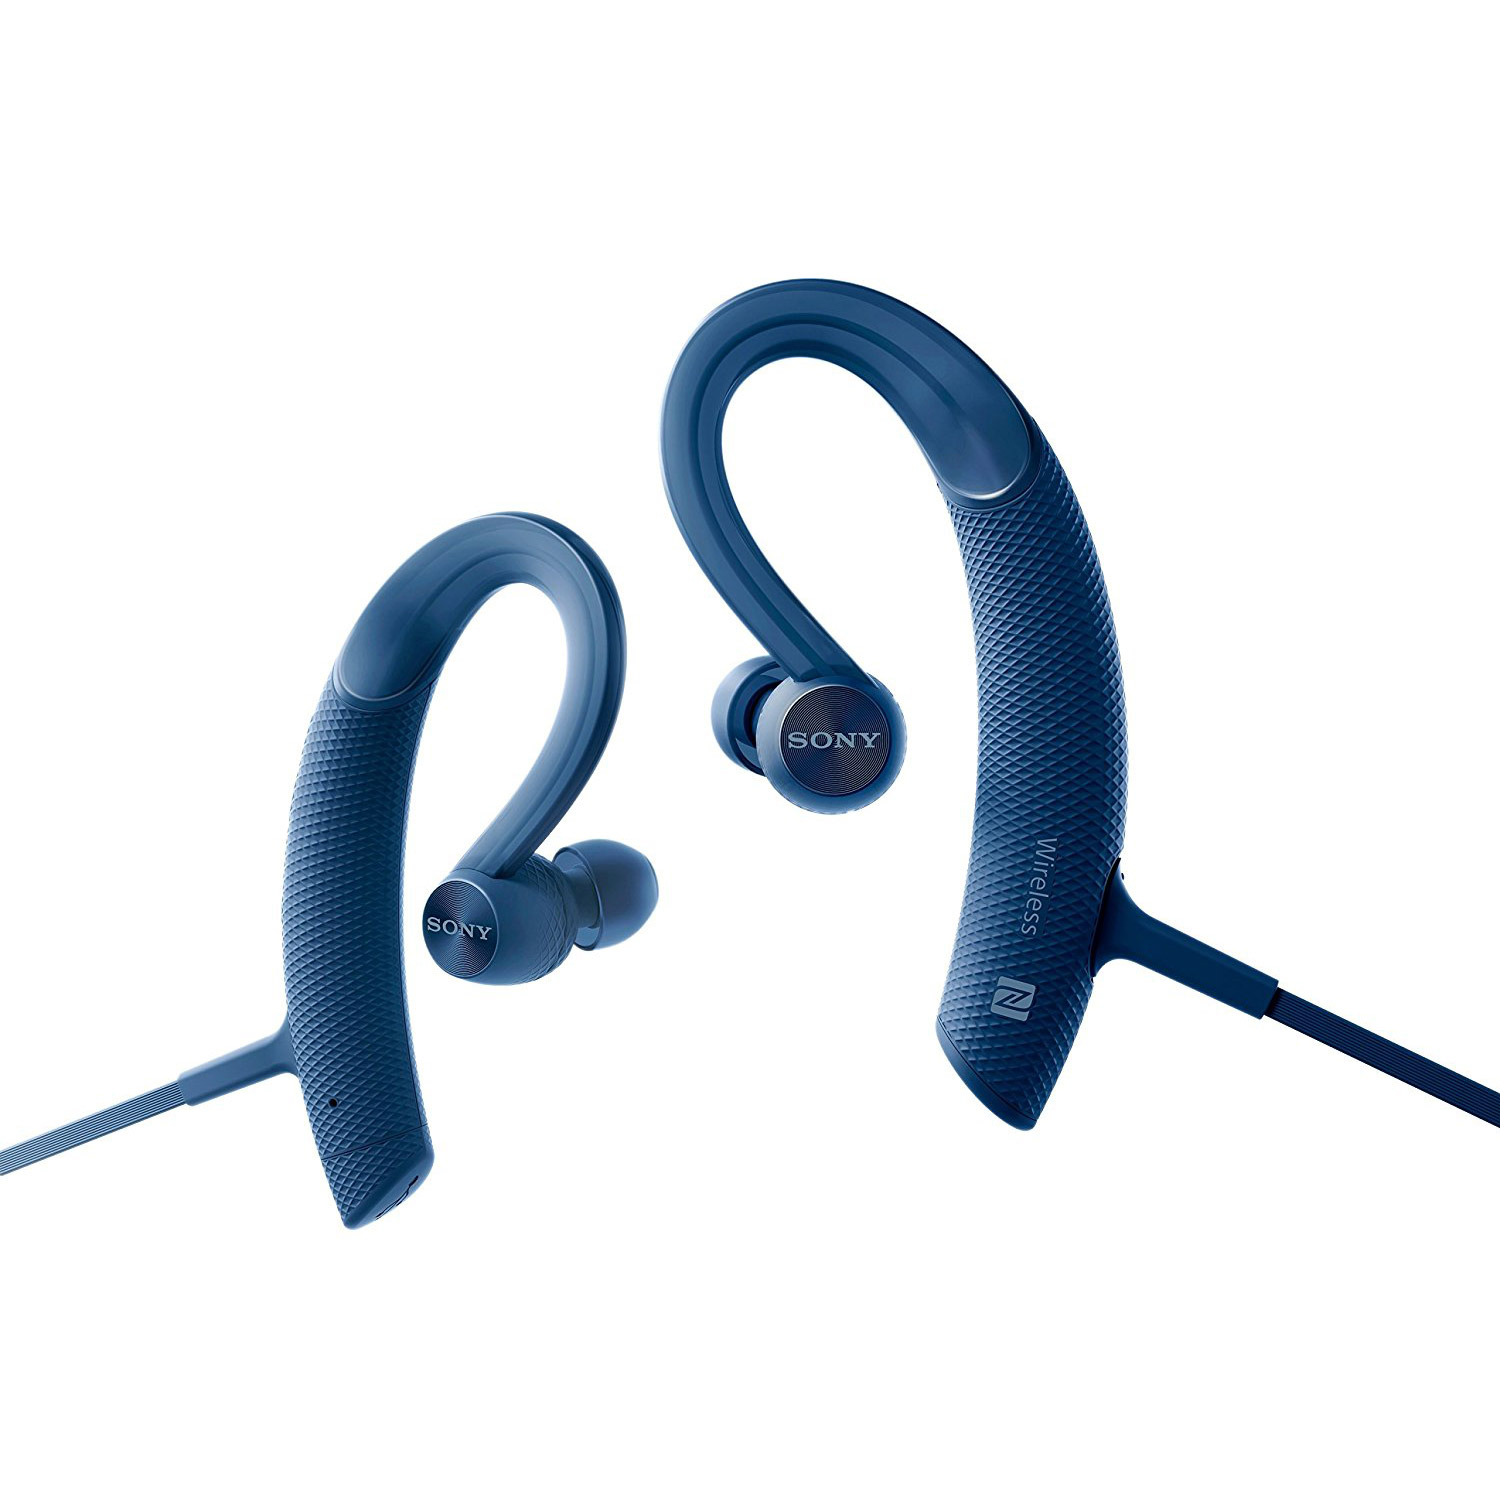 Sony MDRXB80BS/B Premium, Wireless, In-Ear, Sports Headphone, Blue